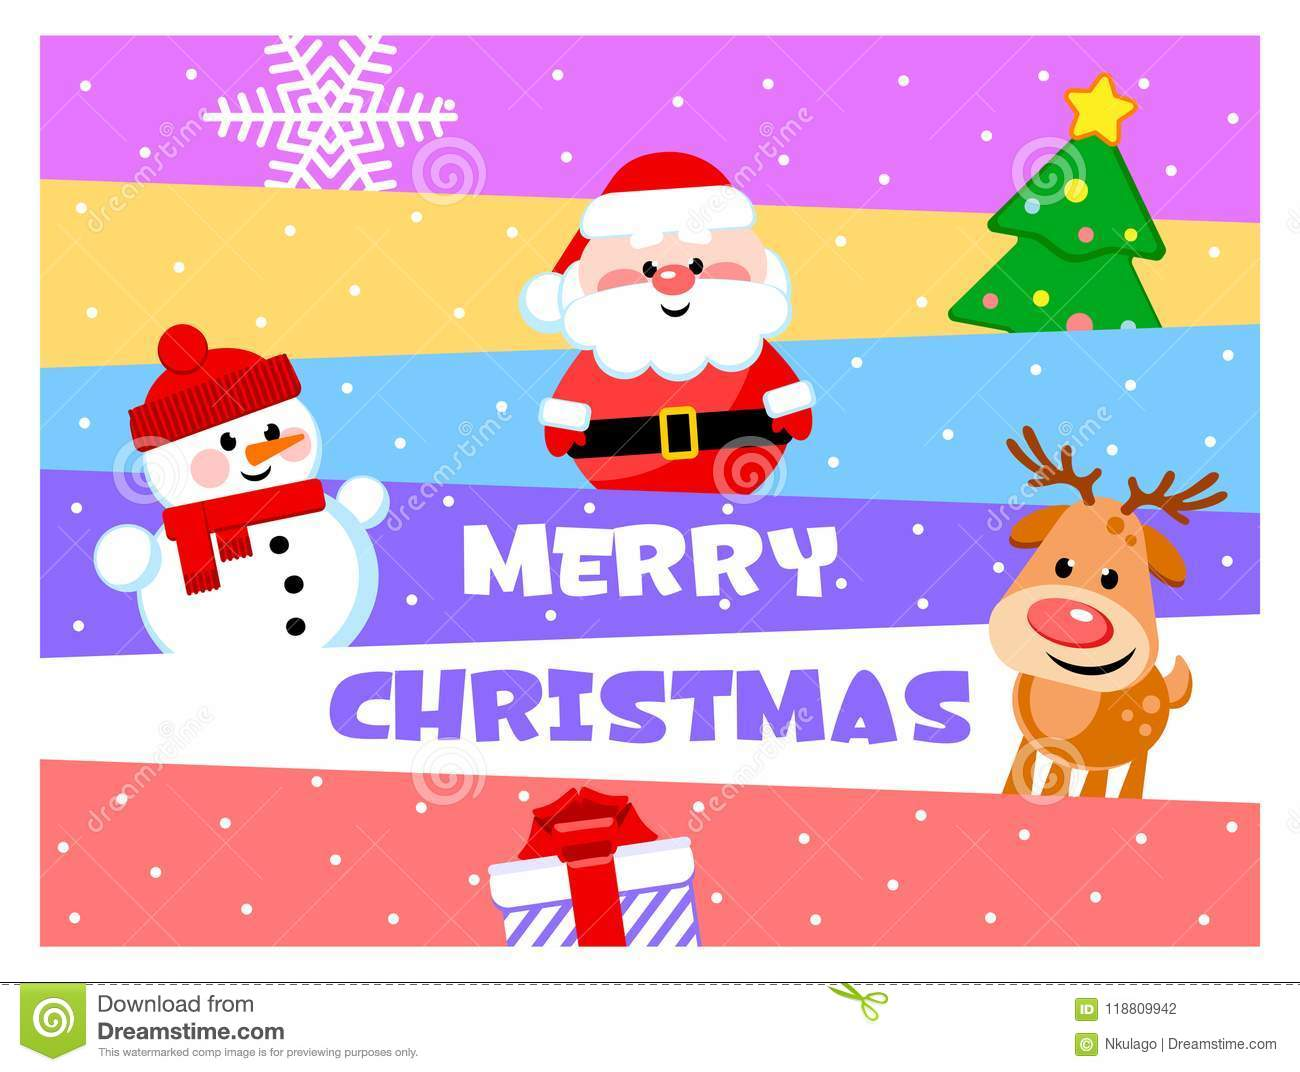 download merry christmas greeting card with funny cartoon characters santa clause snowman - Funny Merry Christmas Greetings